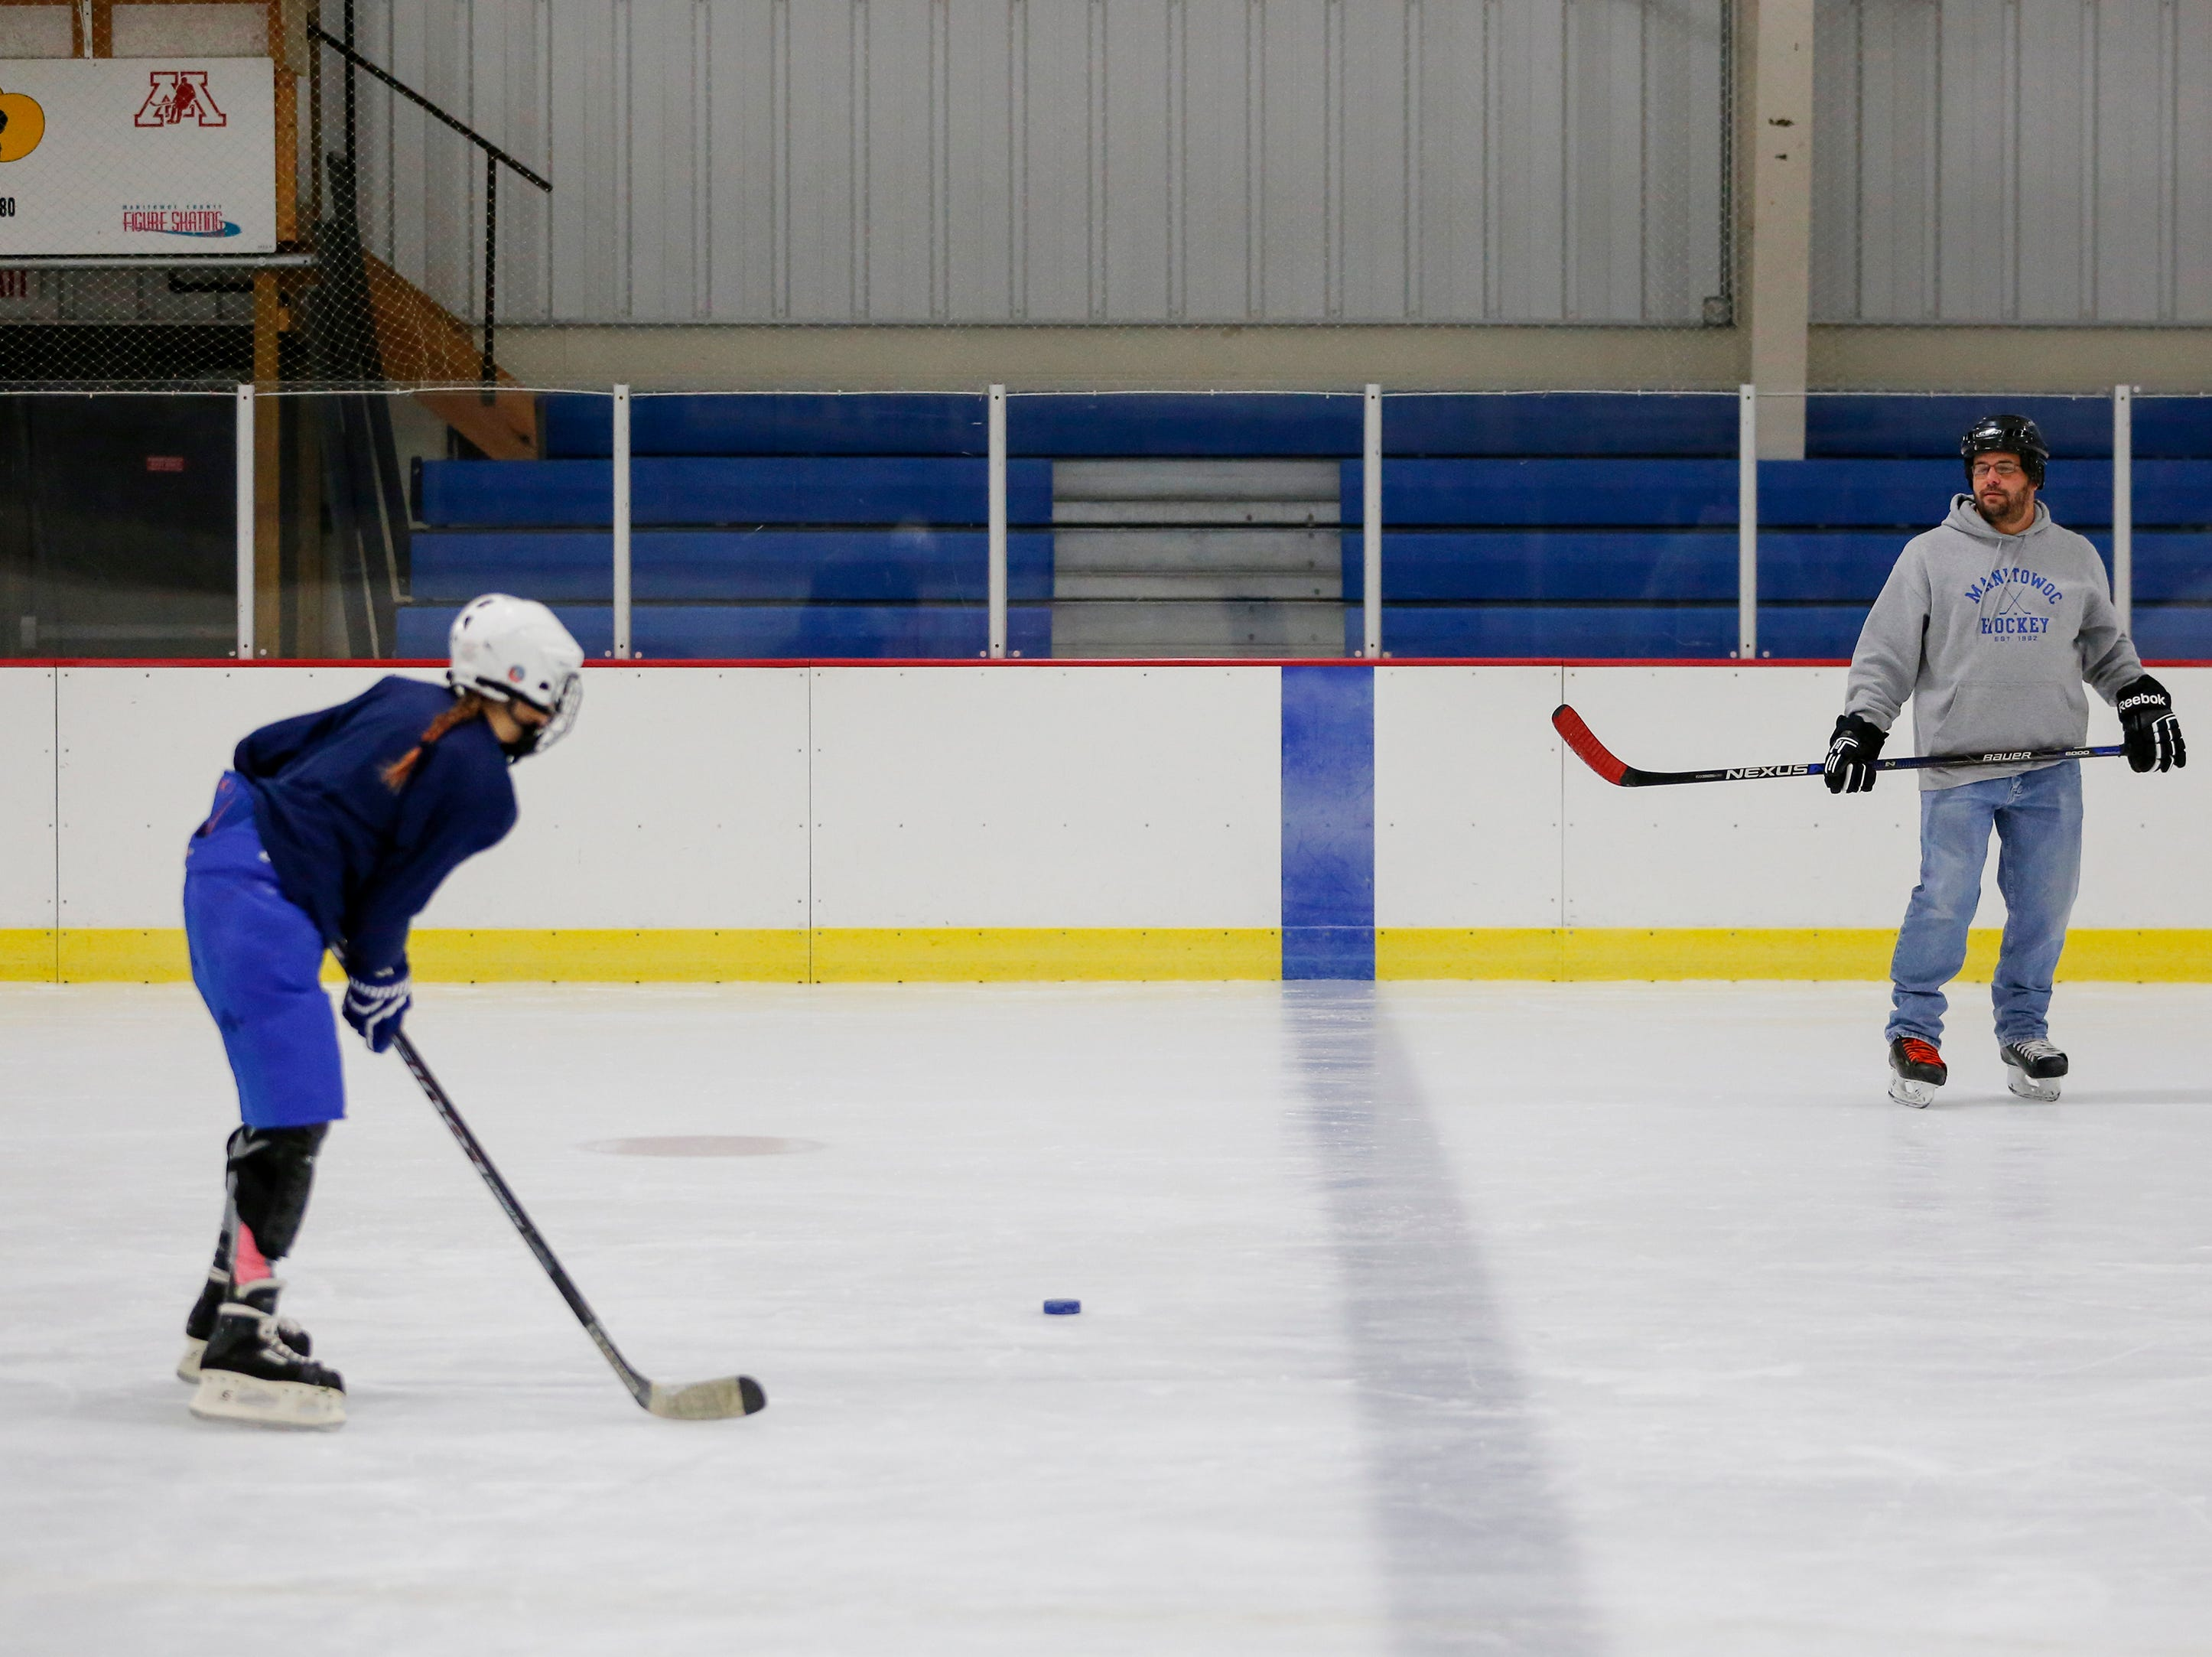 Shaelyn Gamble, 11, practices passing with coaching coordinator Rick Slearvin during the Girls Try Hockey event at the County Ice Center Saturday, October 13, 2018, in Manitowoc, Wis. Joshua Clark/USA TODAY NETWORK-Wisconsin